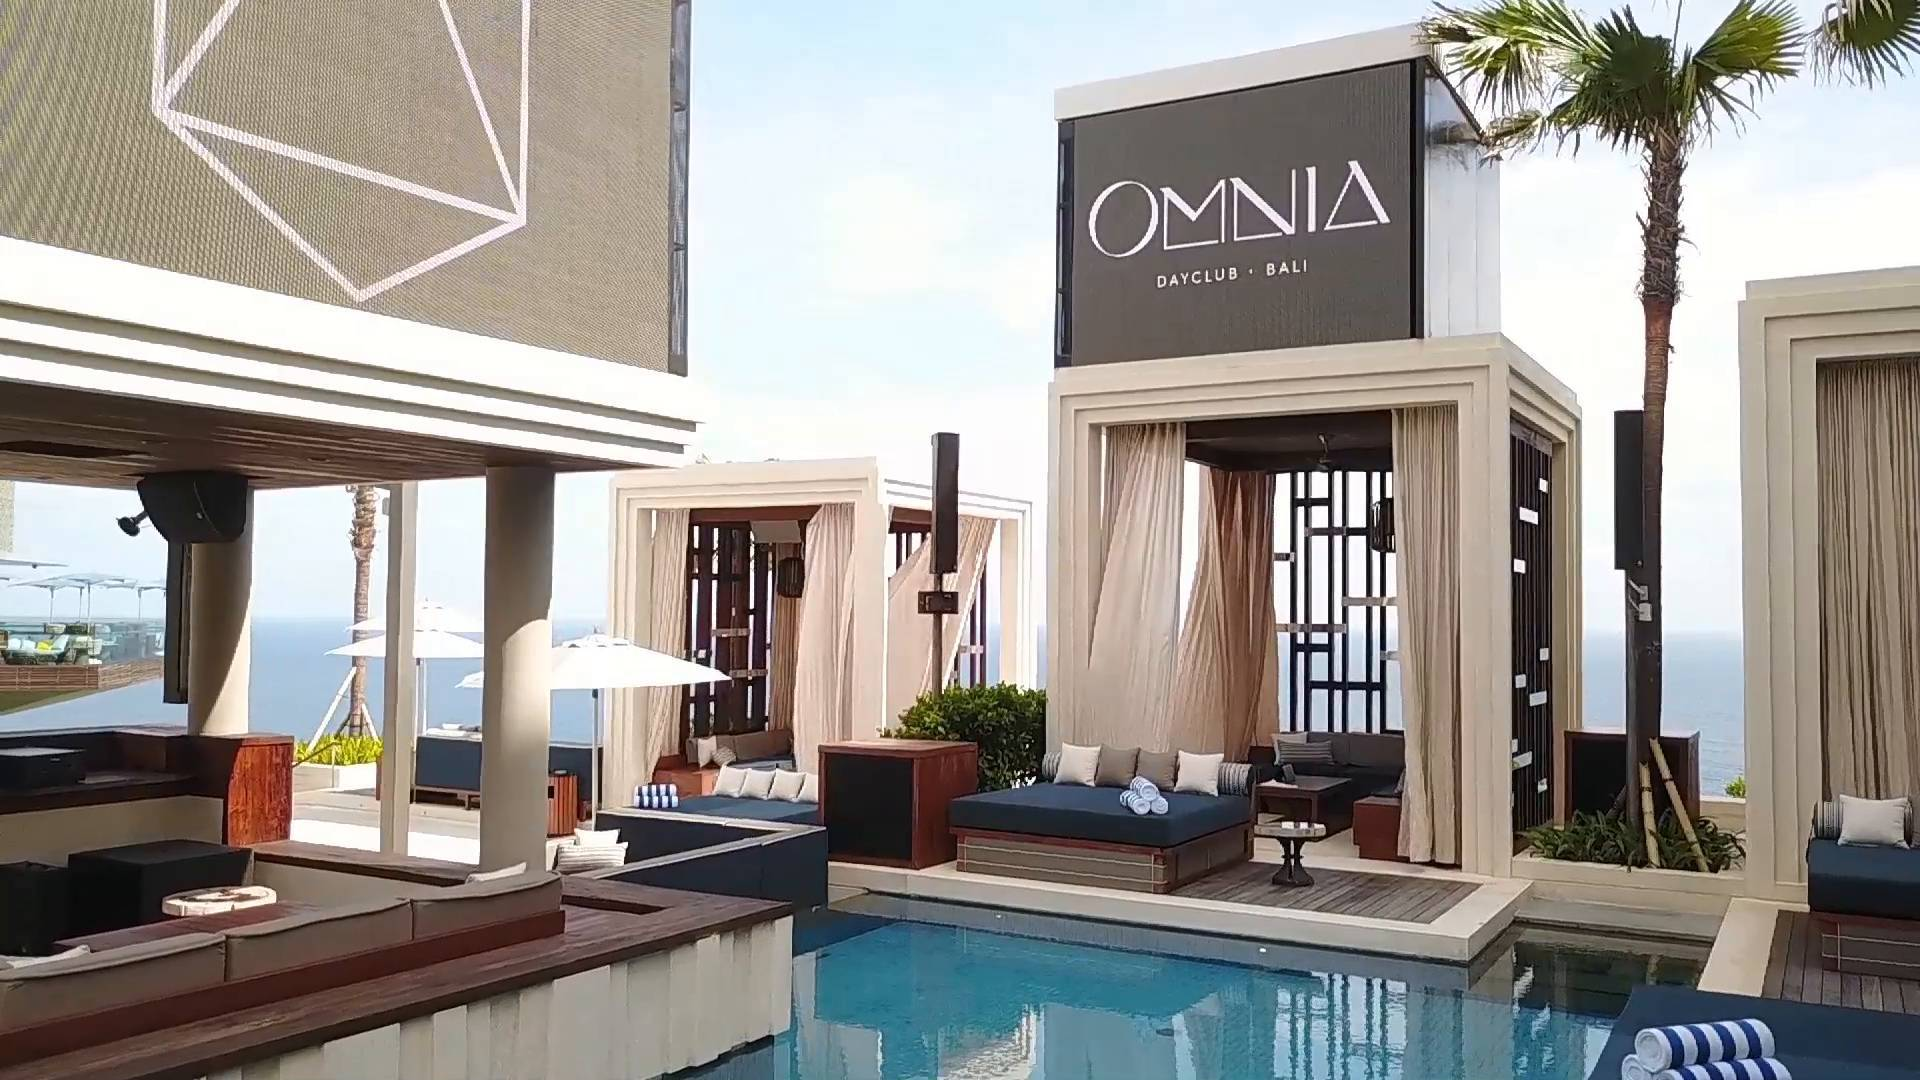 Image from OMNIA